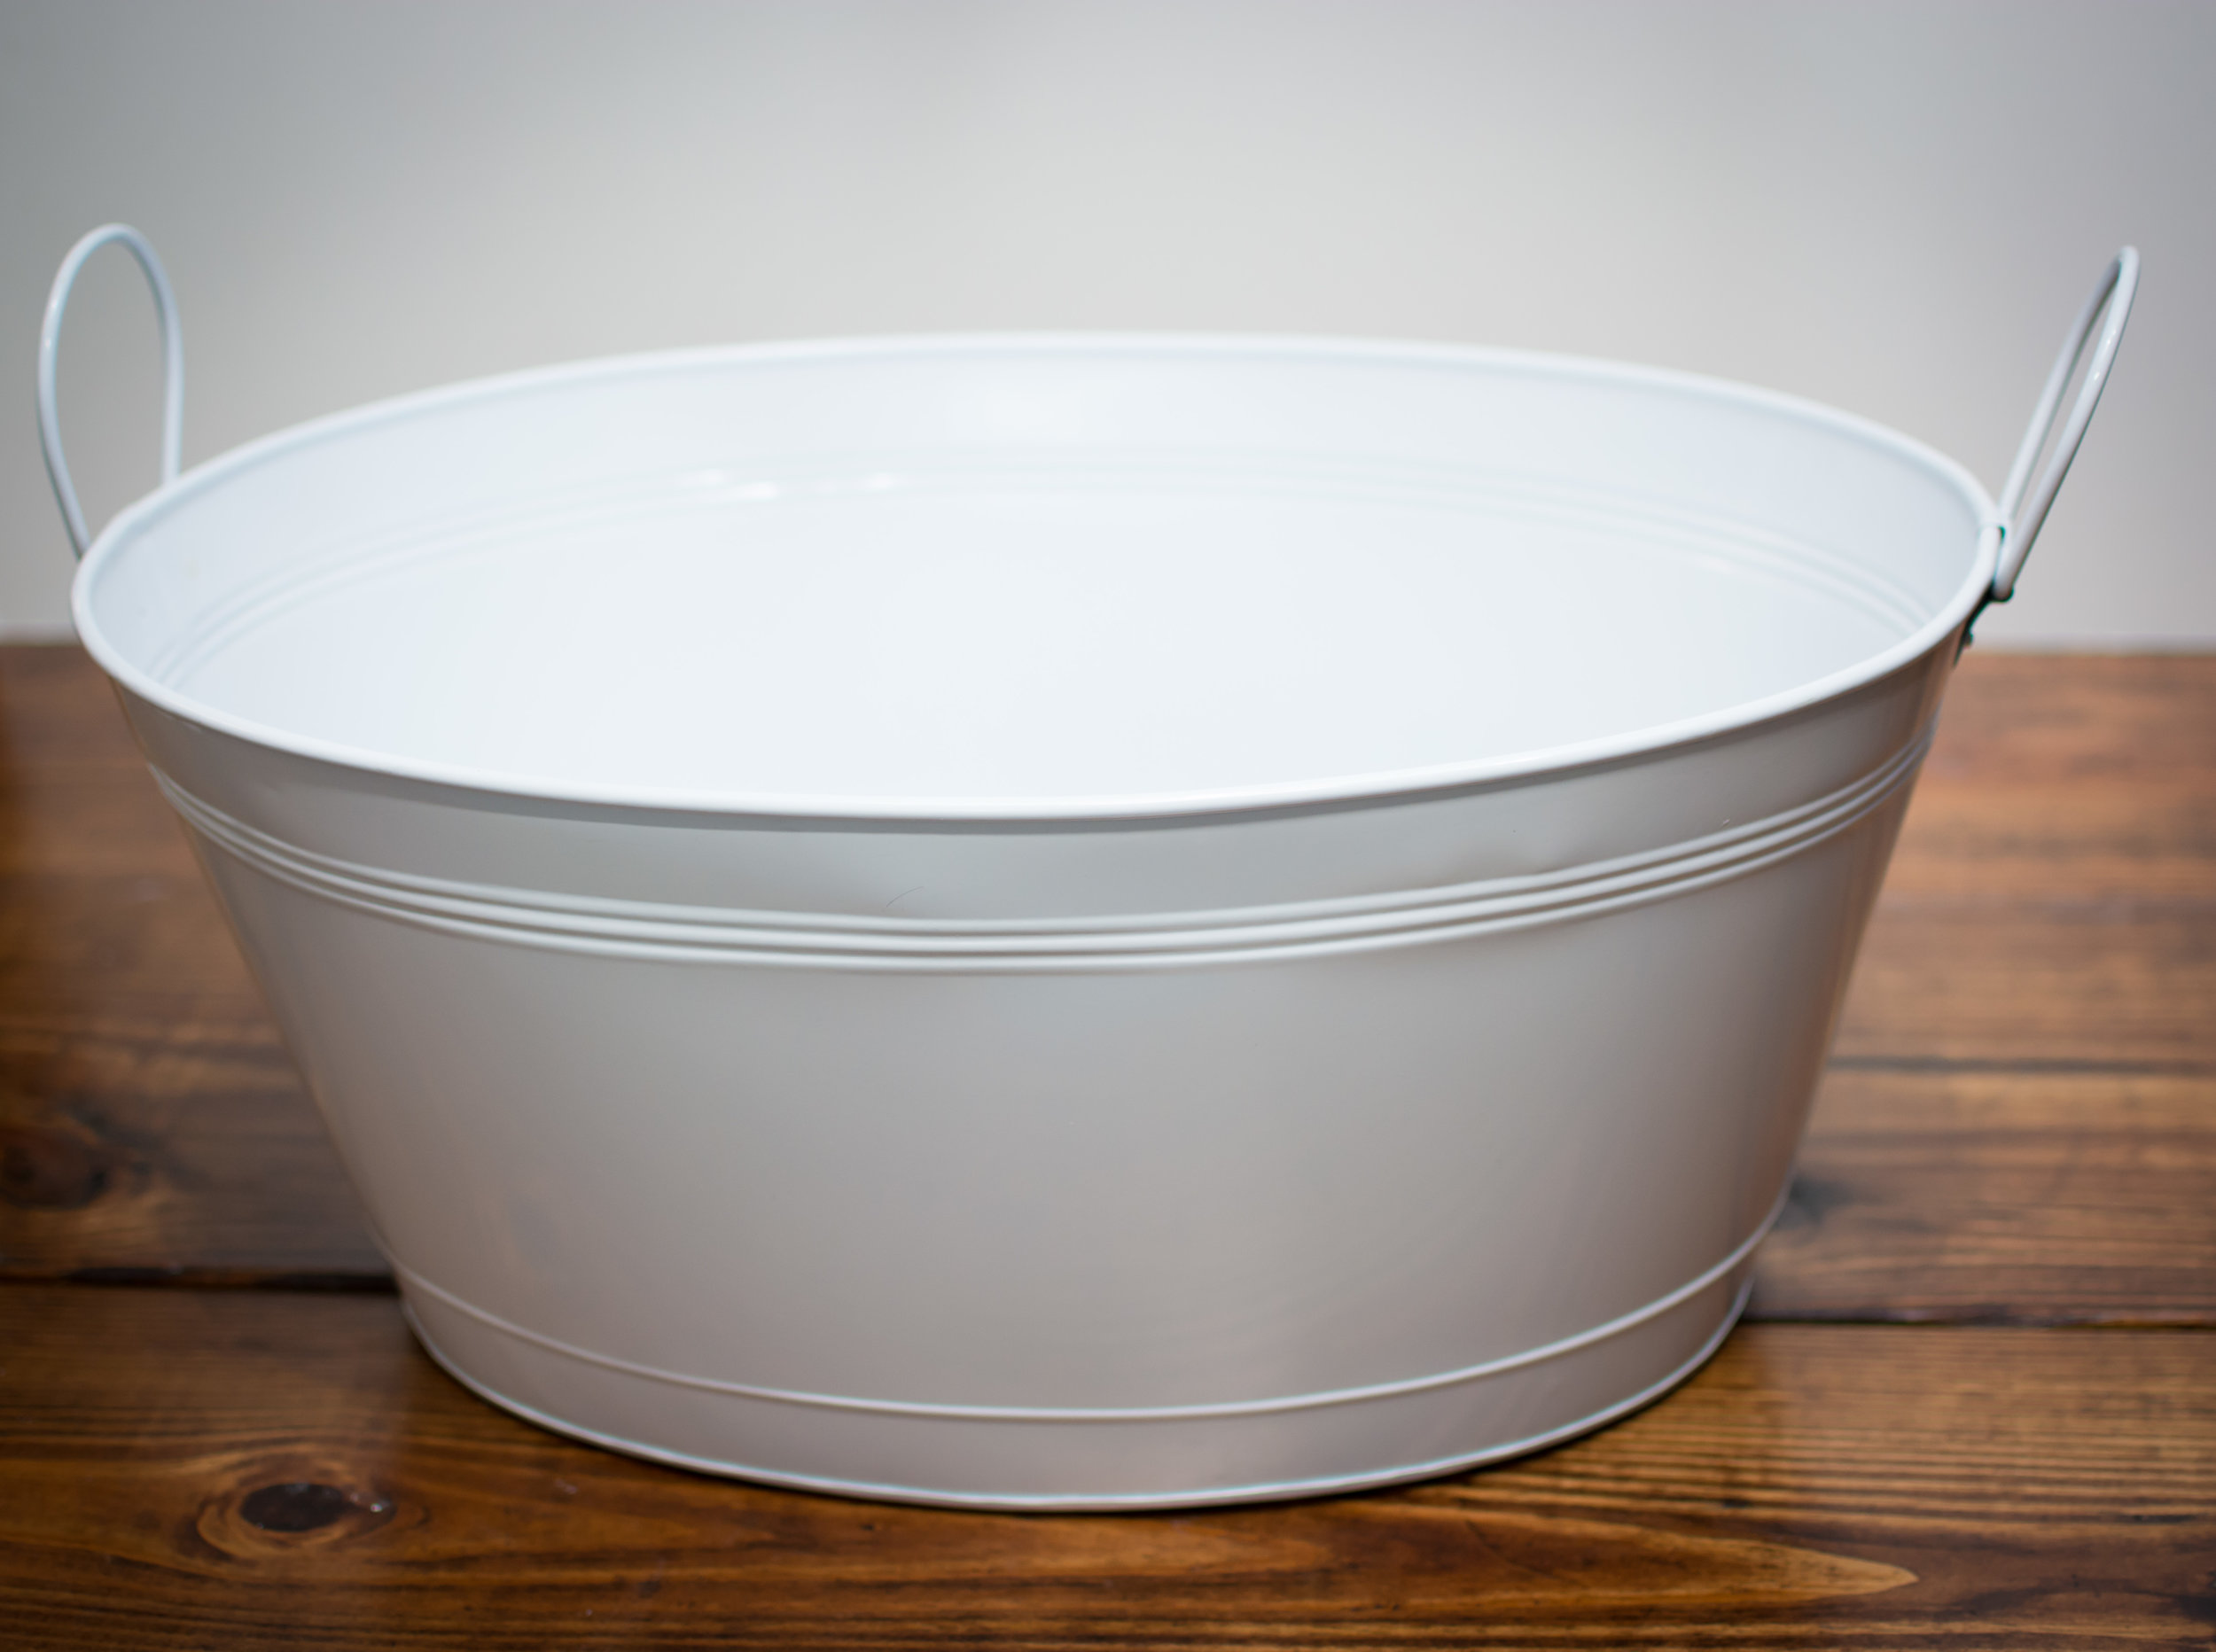 Large size white beverage tub   Price: $12.00 Each  Quantity Available: 4